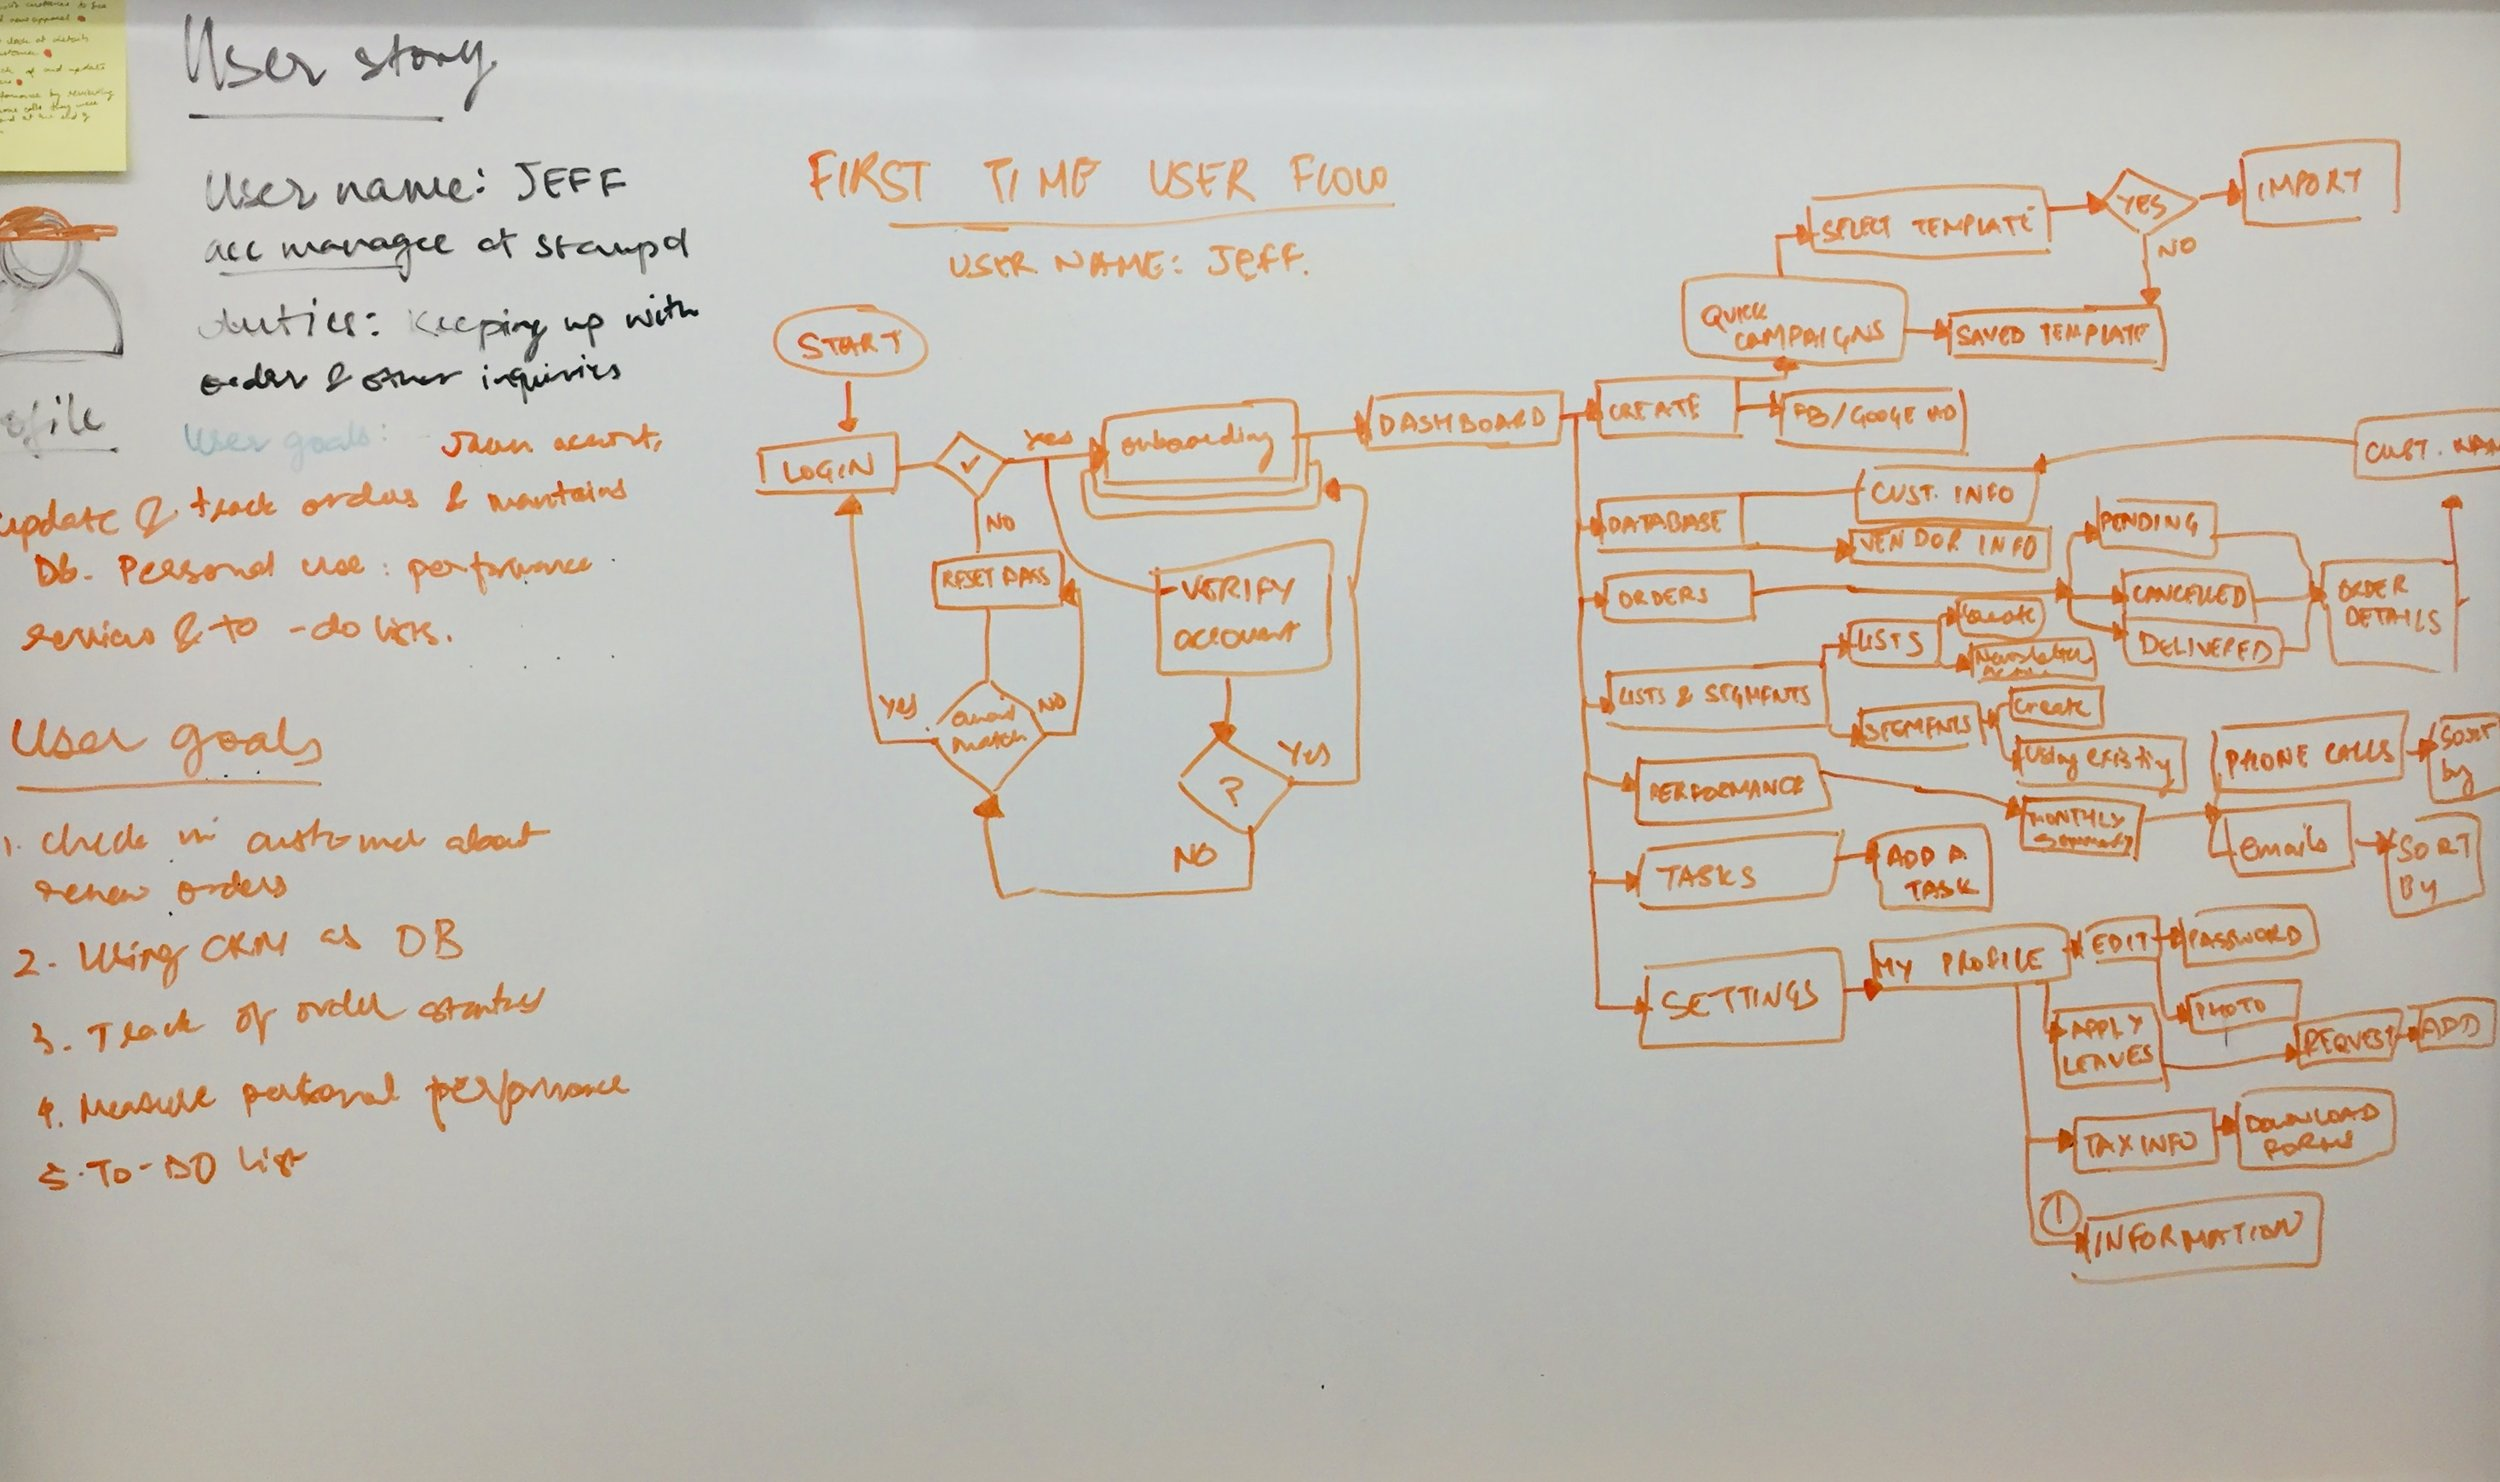 First Time User Flow - BTS.jpg